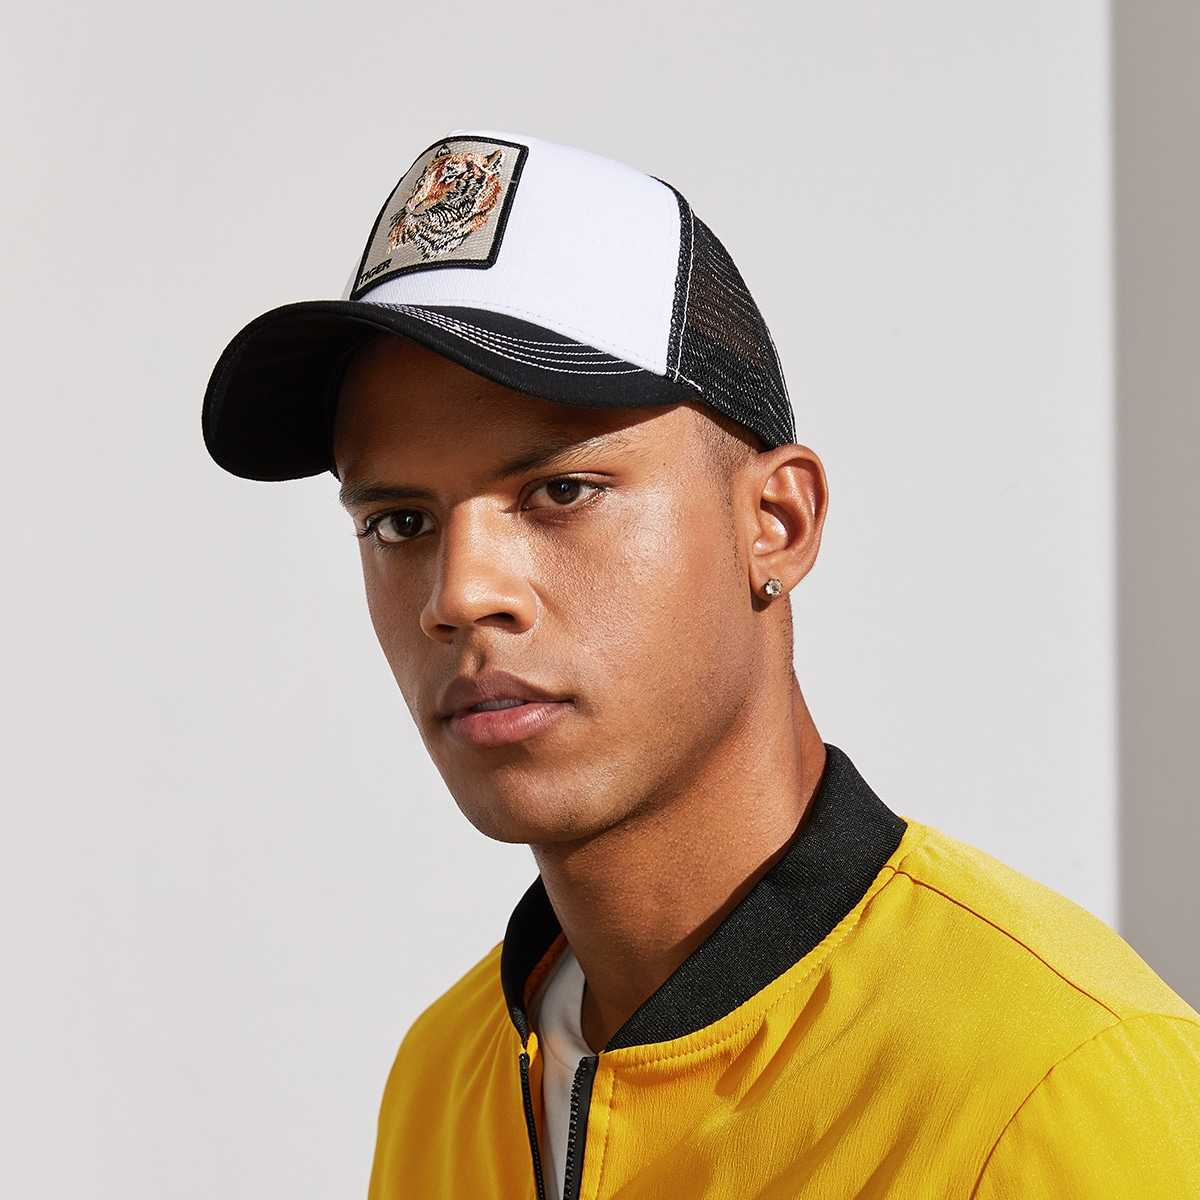 Guys Tiger Embroidery Baseball Cap in Multicolor by ROMWE on GOOFASH